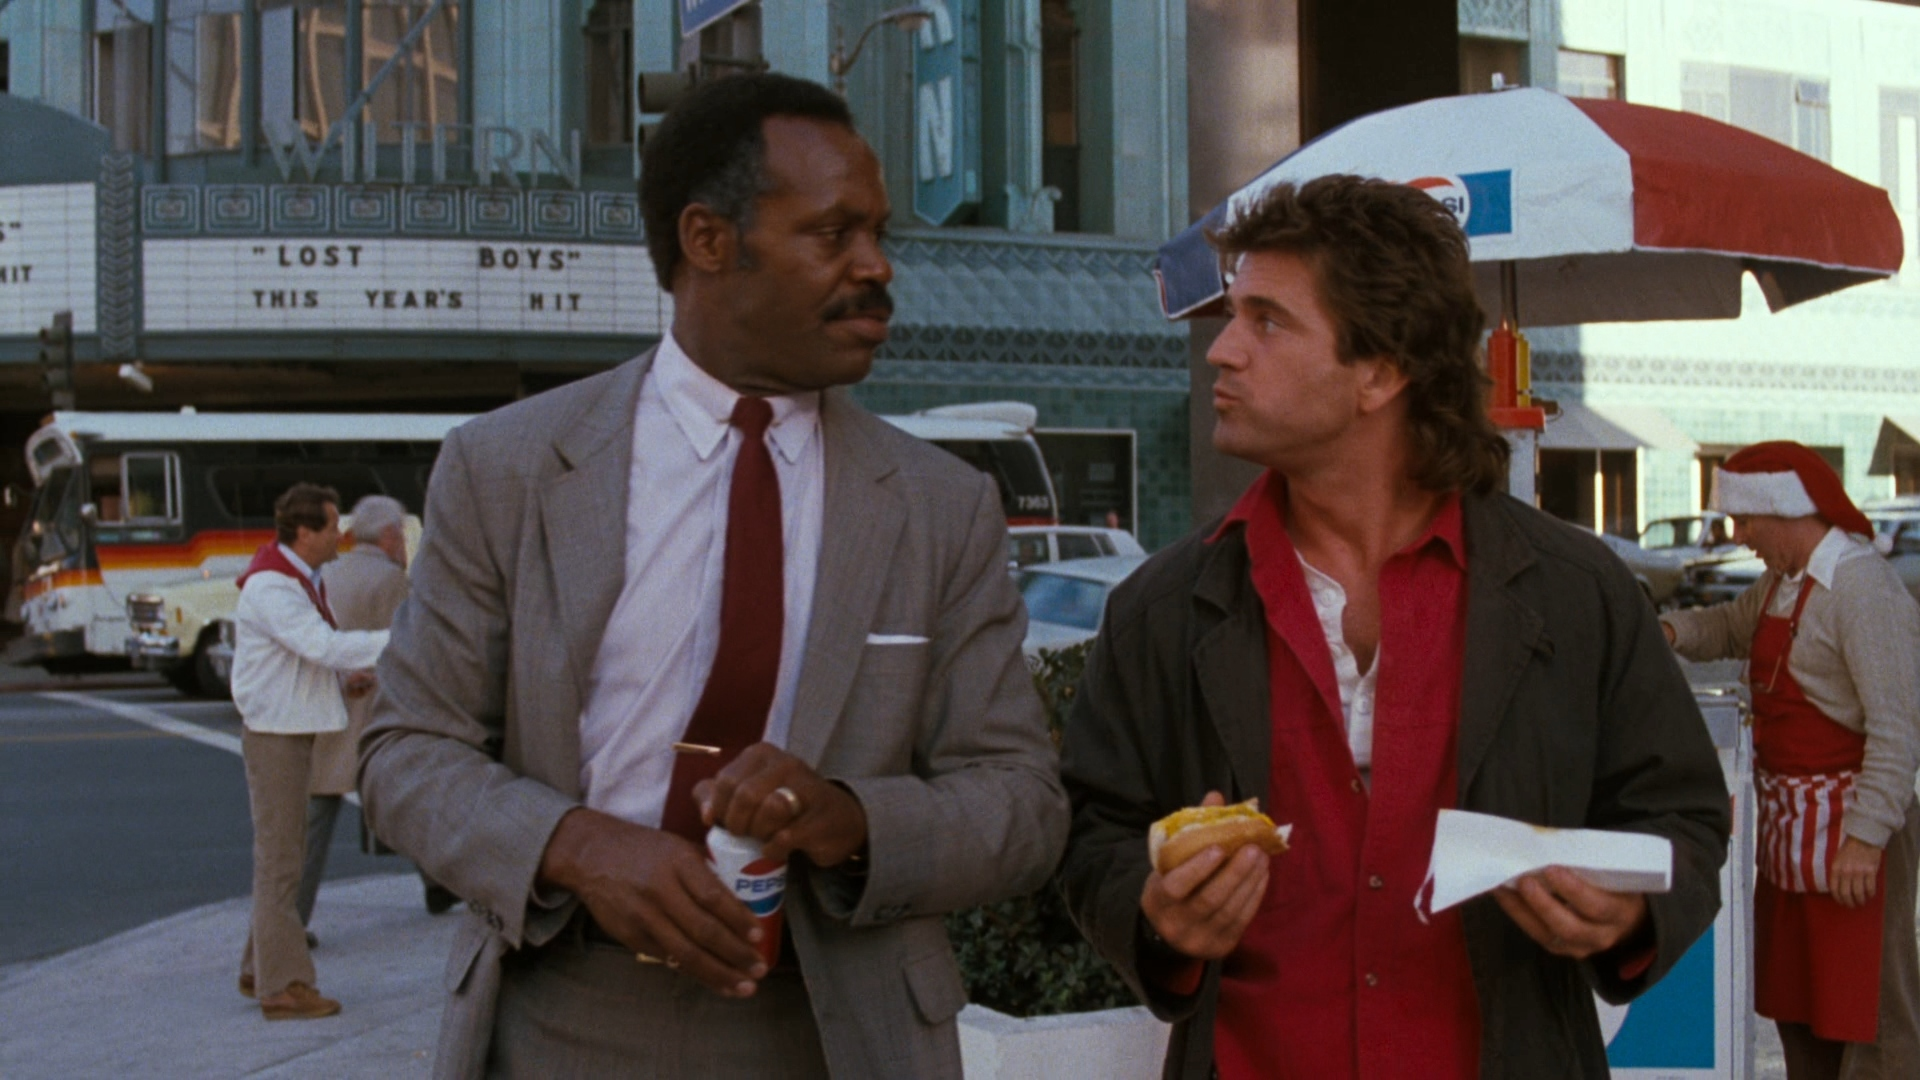 lethal-weapon-1-danny-glover-mel-gibson.jpg